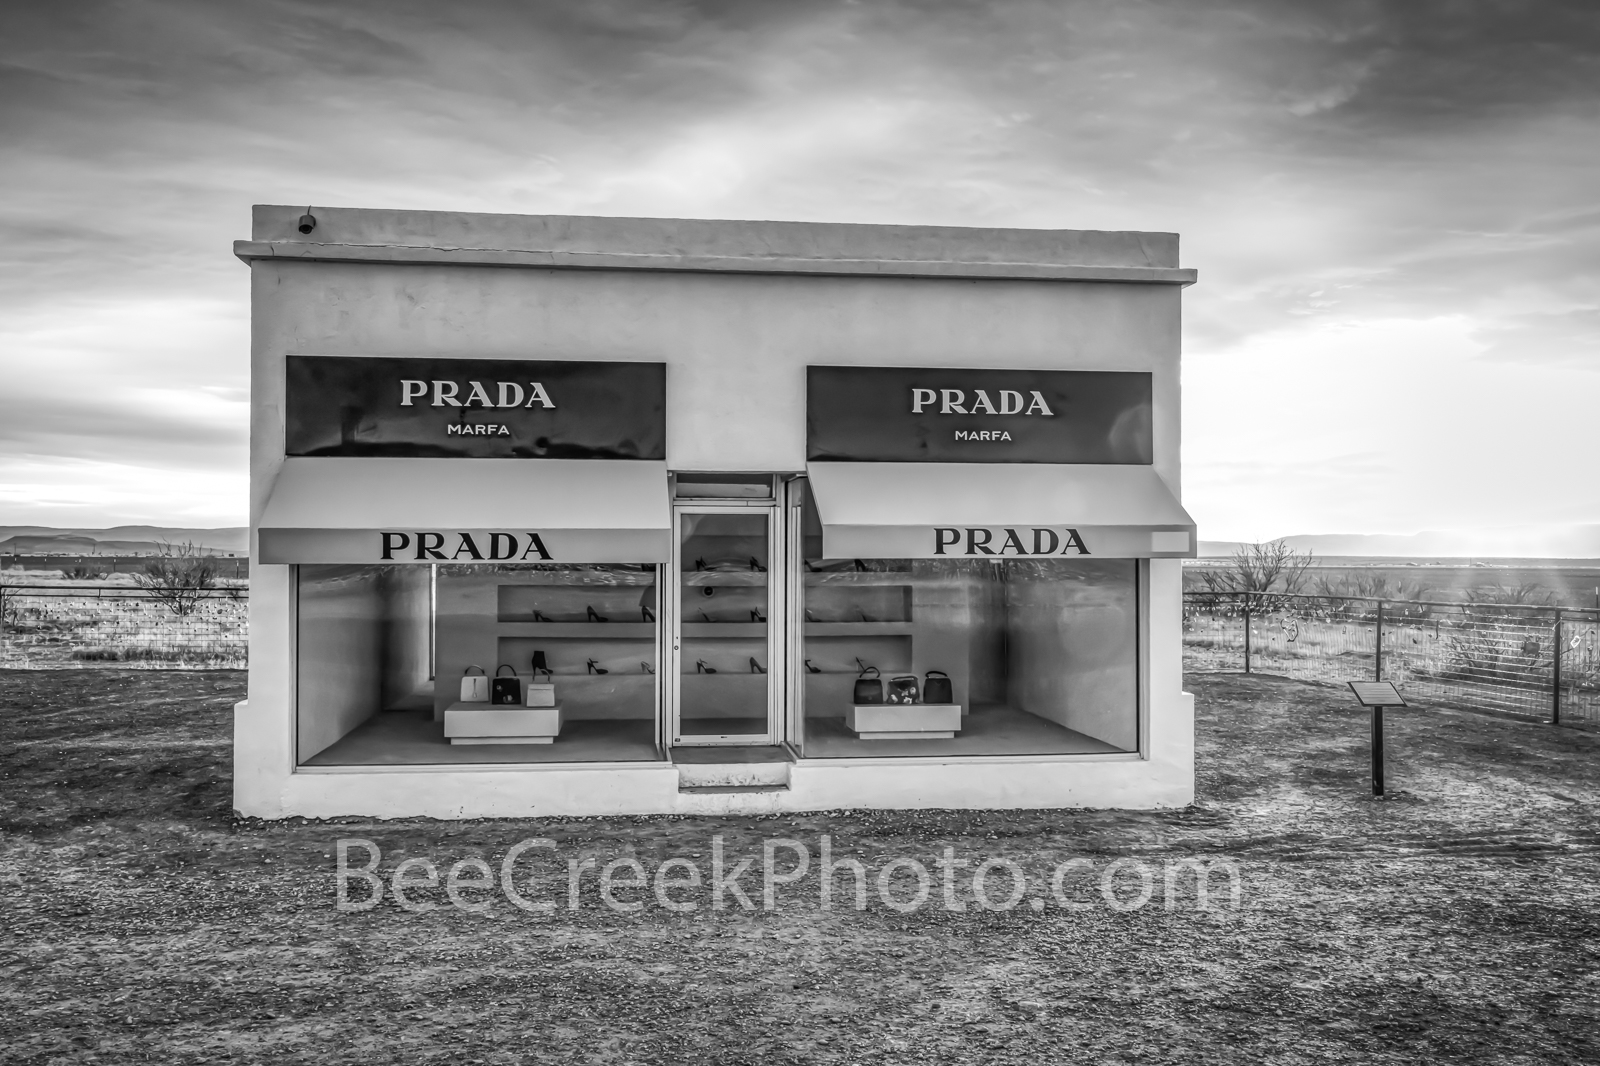 West Texas Prada BW - This images captures the Marfaa Prada exibit in Valentine Texas just as it sit right off the road in black...